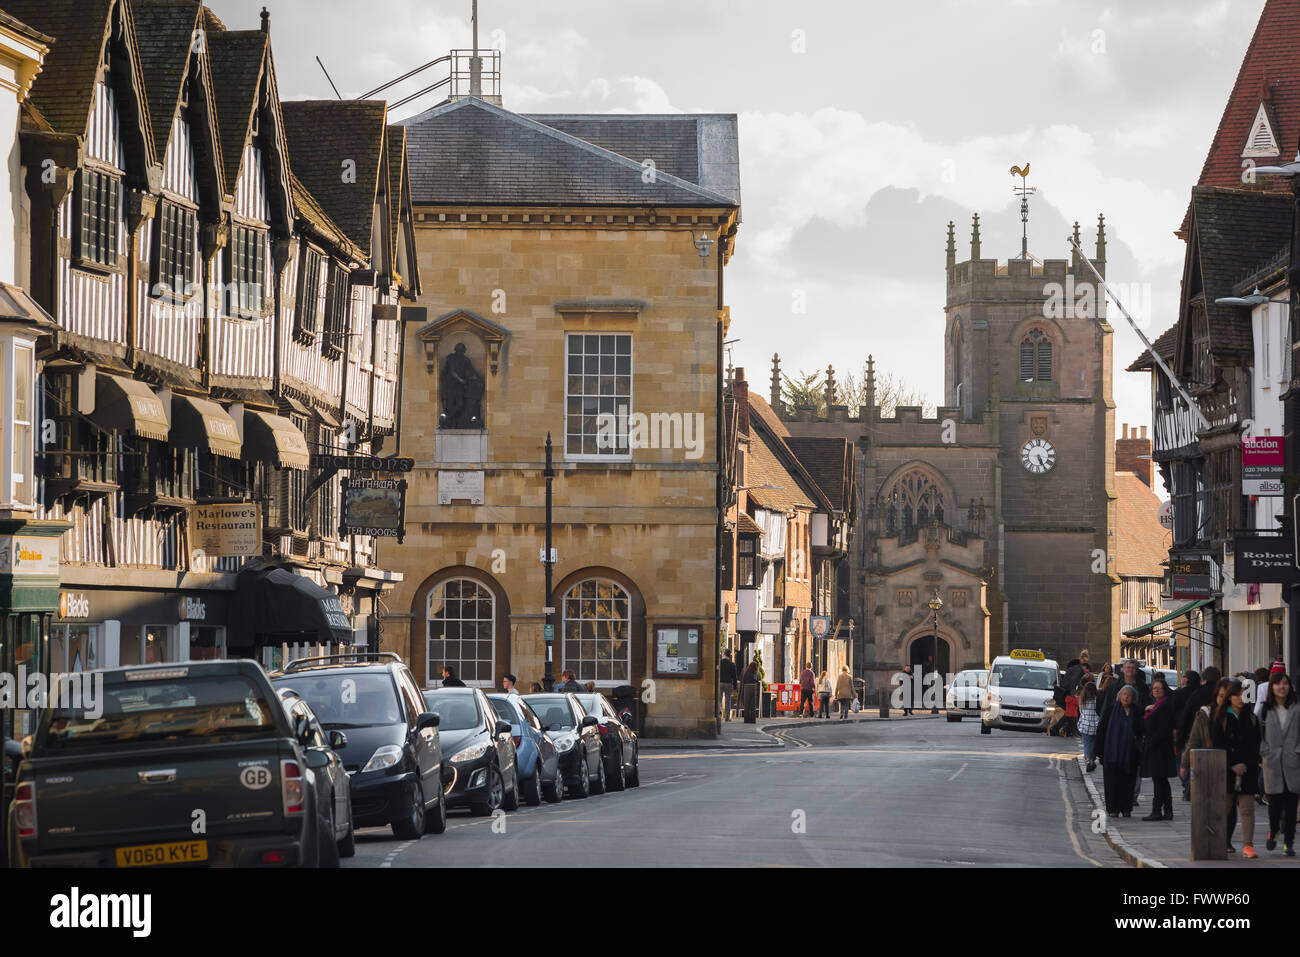 The High Street in Stratford Upon Avon, England. - Stock Image